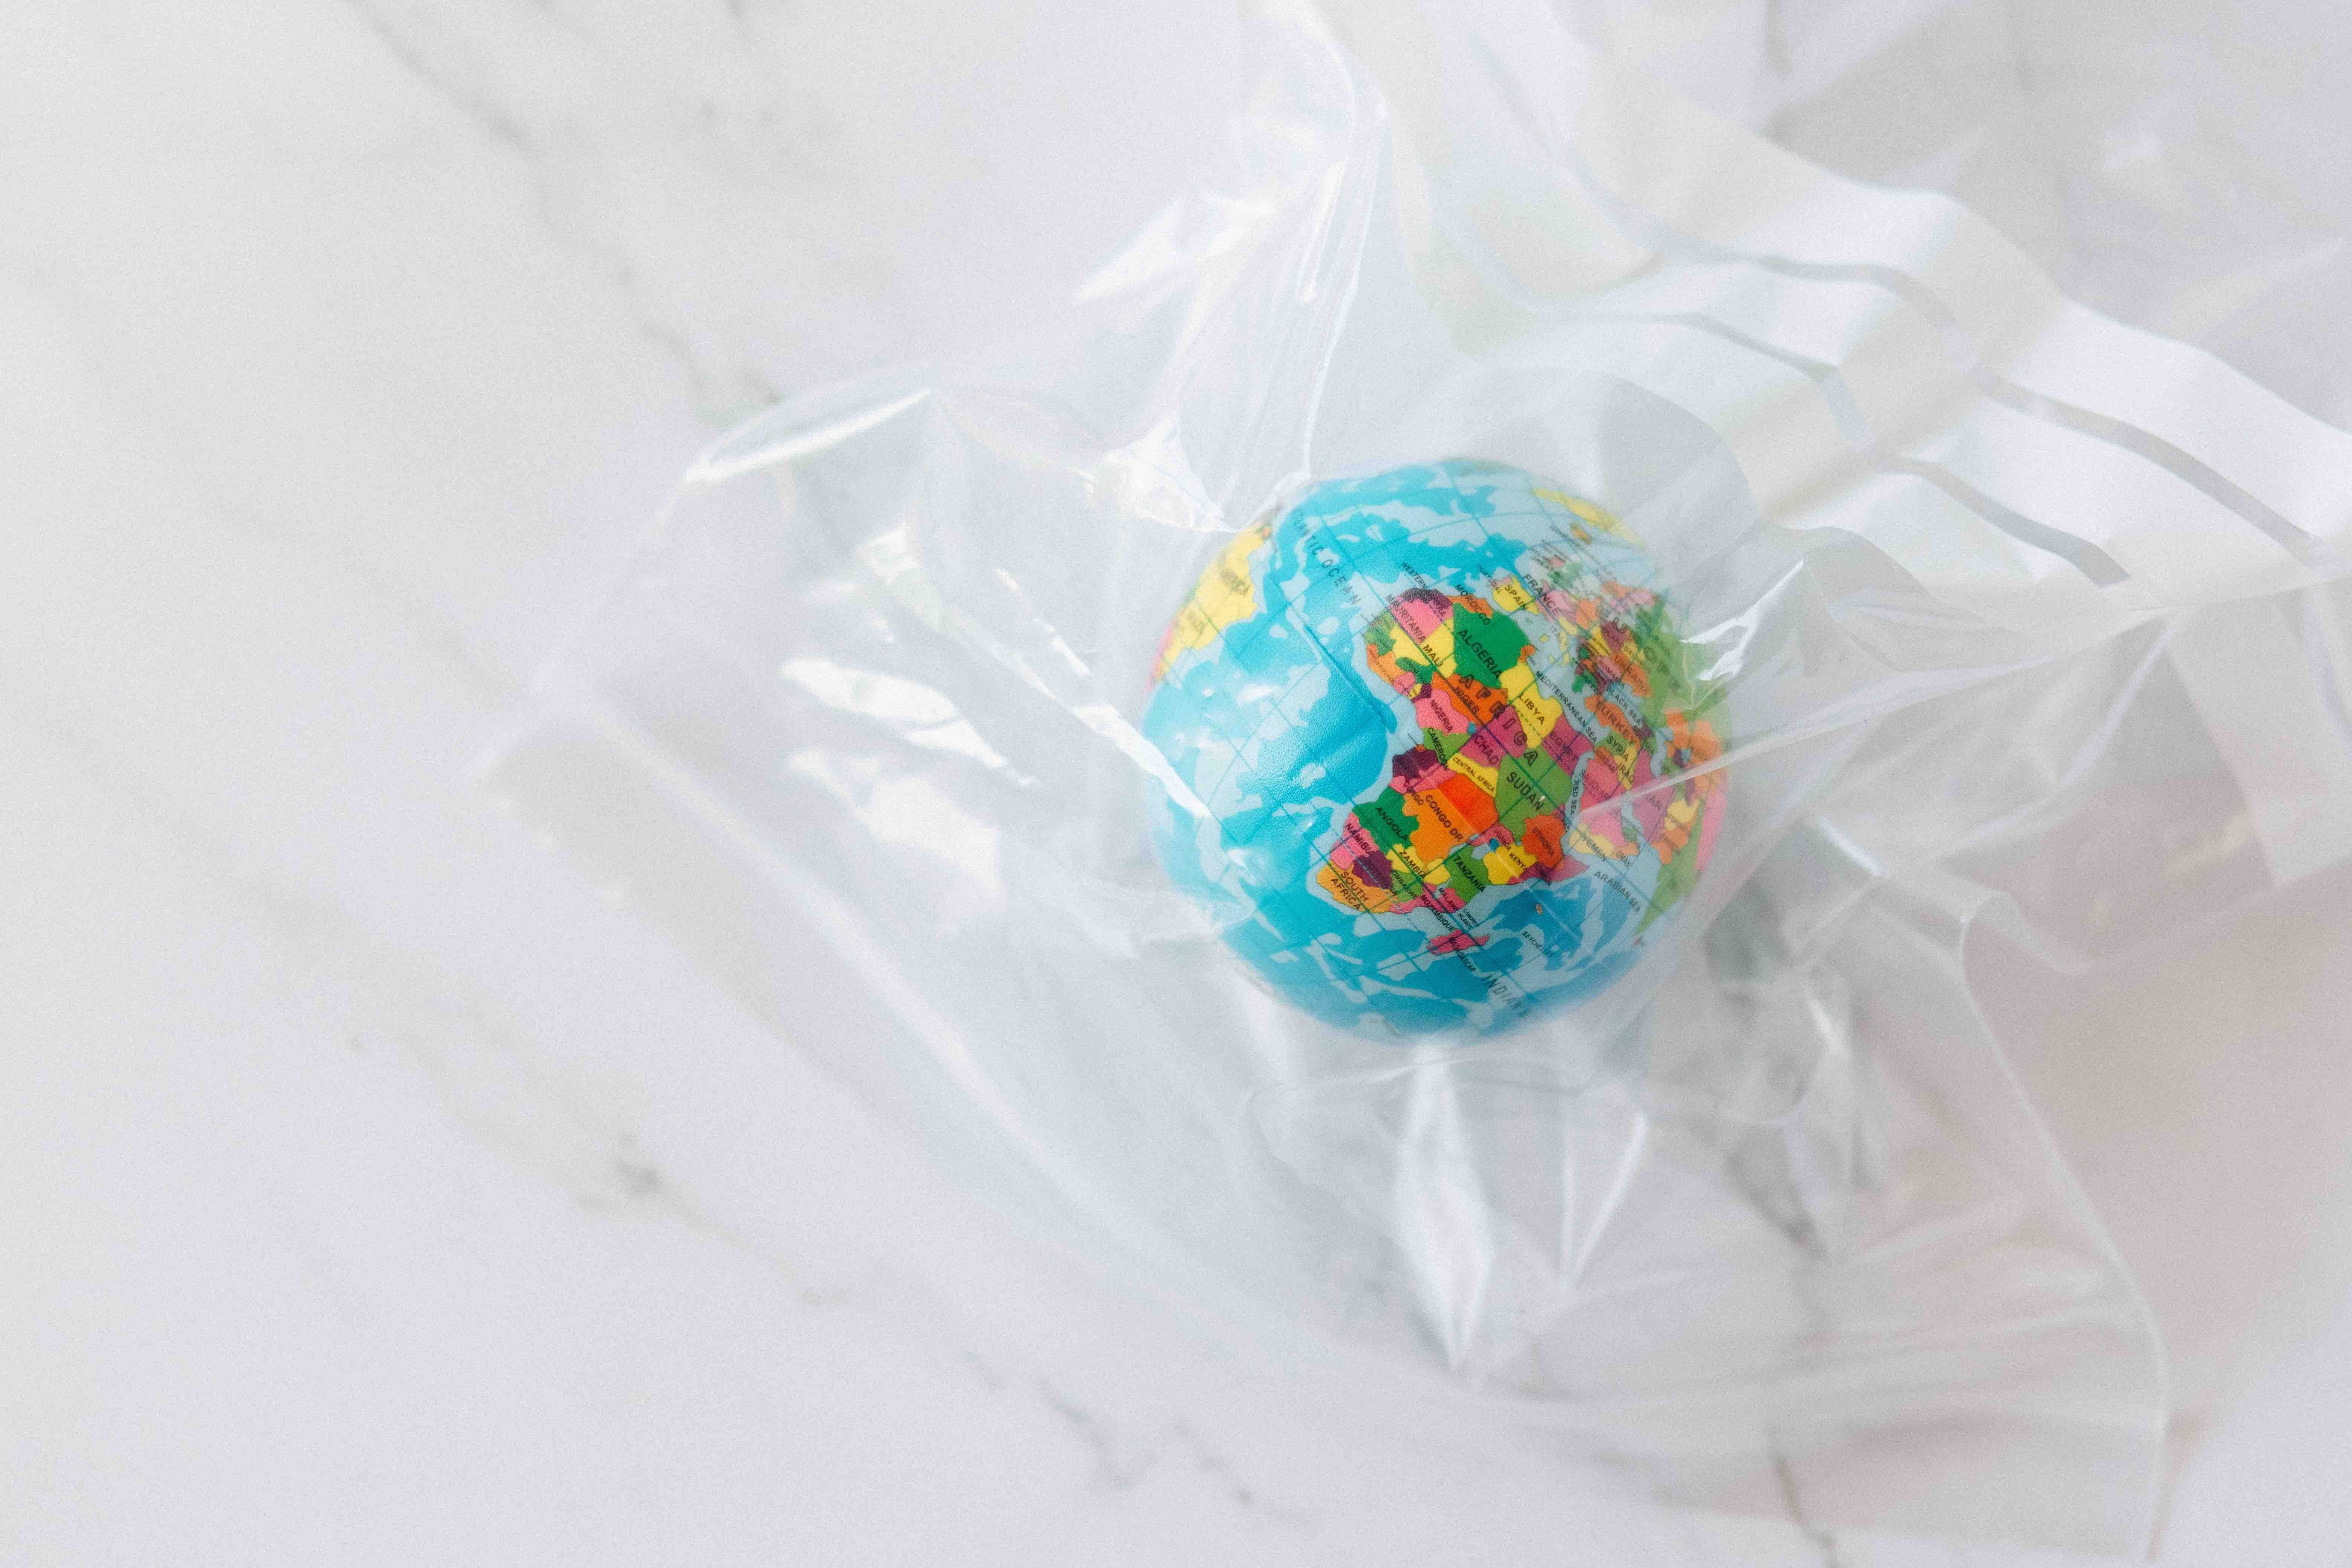 Earth in a plastic bag